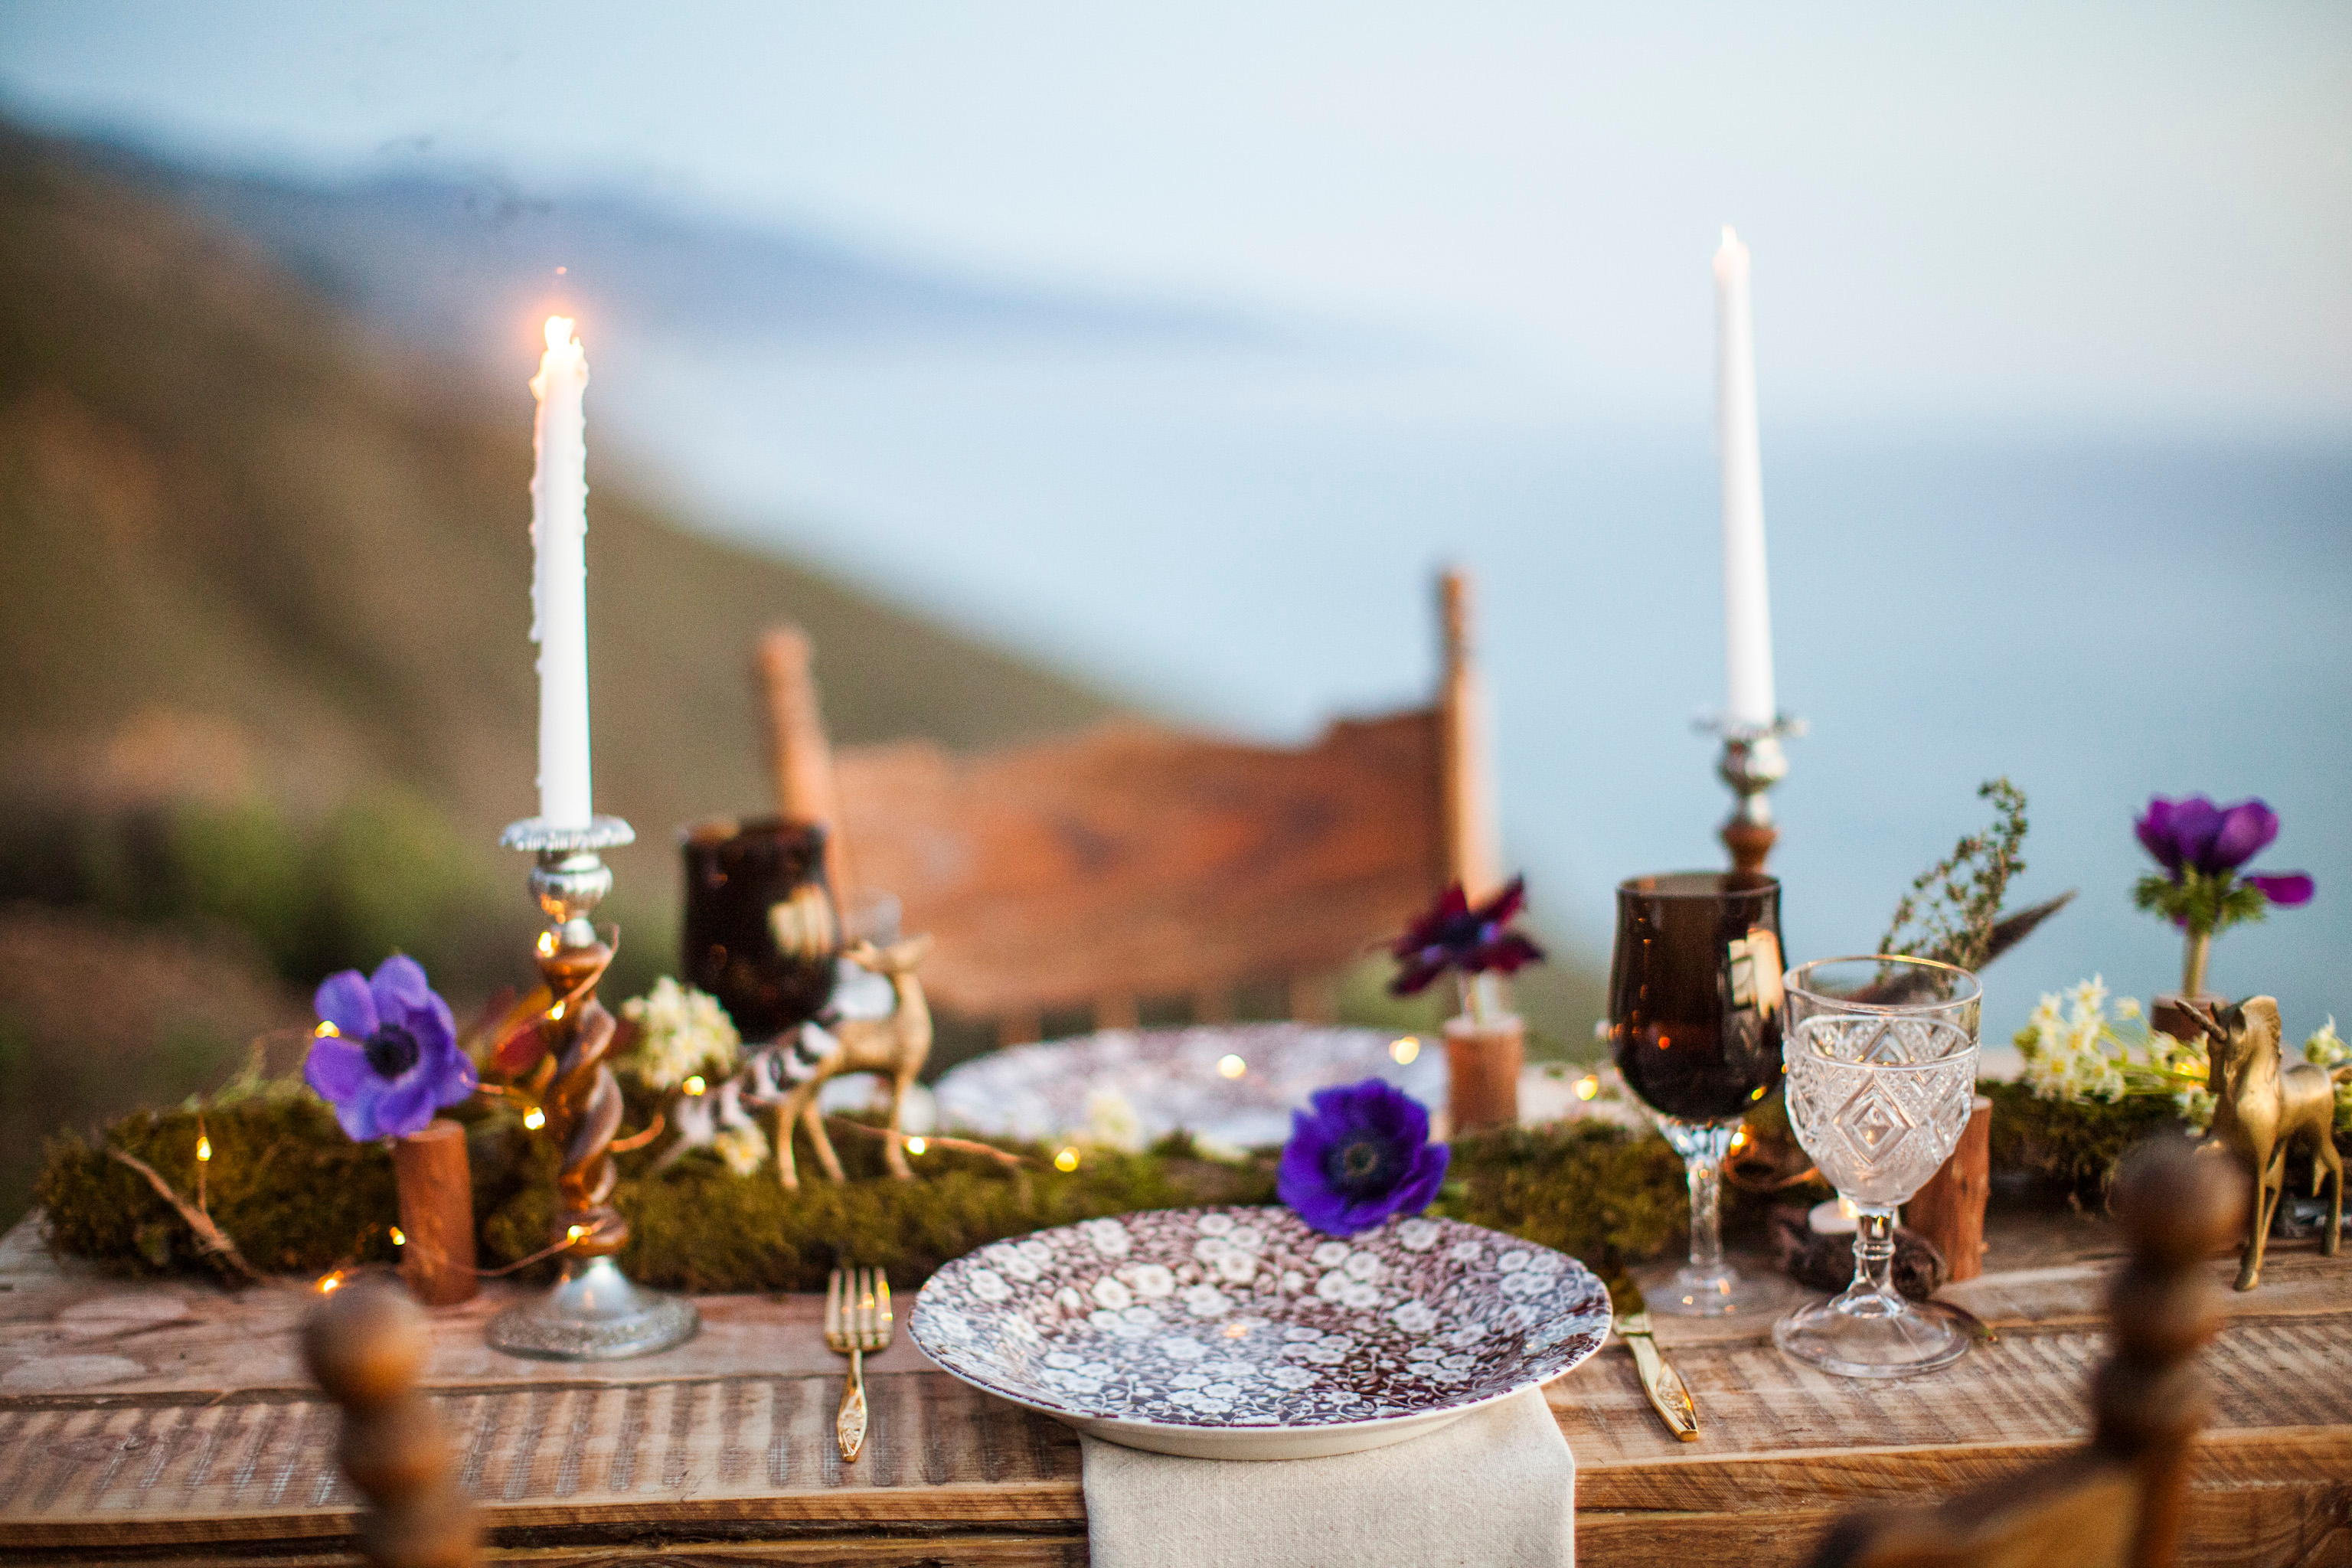 Sea Stars Big Sur Catering and Events & Stardust Vintage Rentals image 0